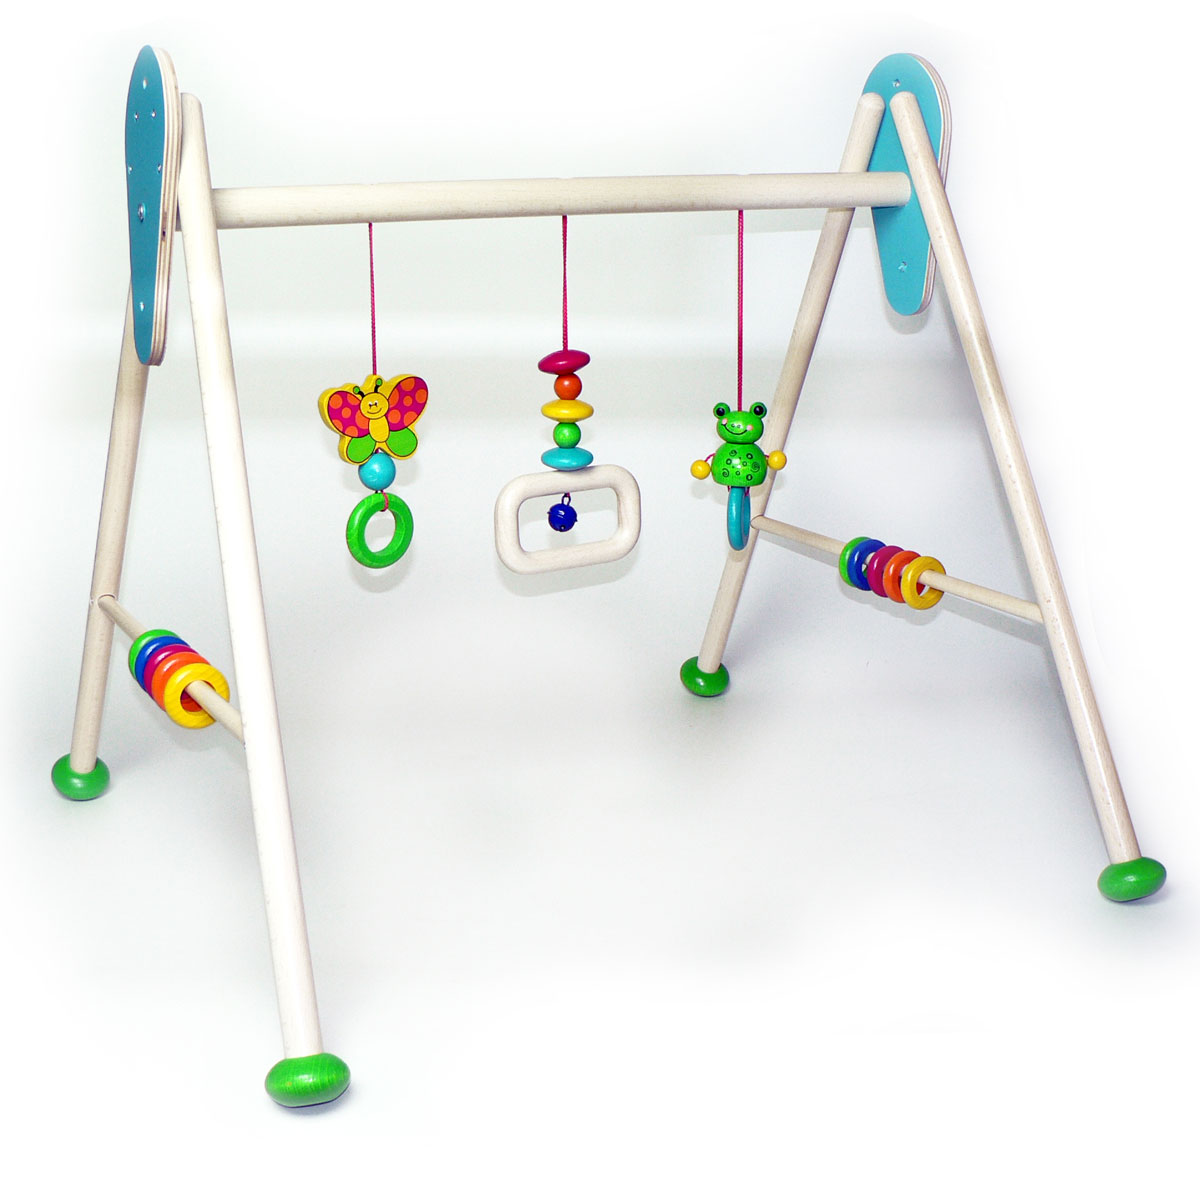 hess baby gym spieltrainer frosch toni aus solidem holz. Black Bedroom Furniture Sets. Home Design Ideas